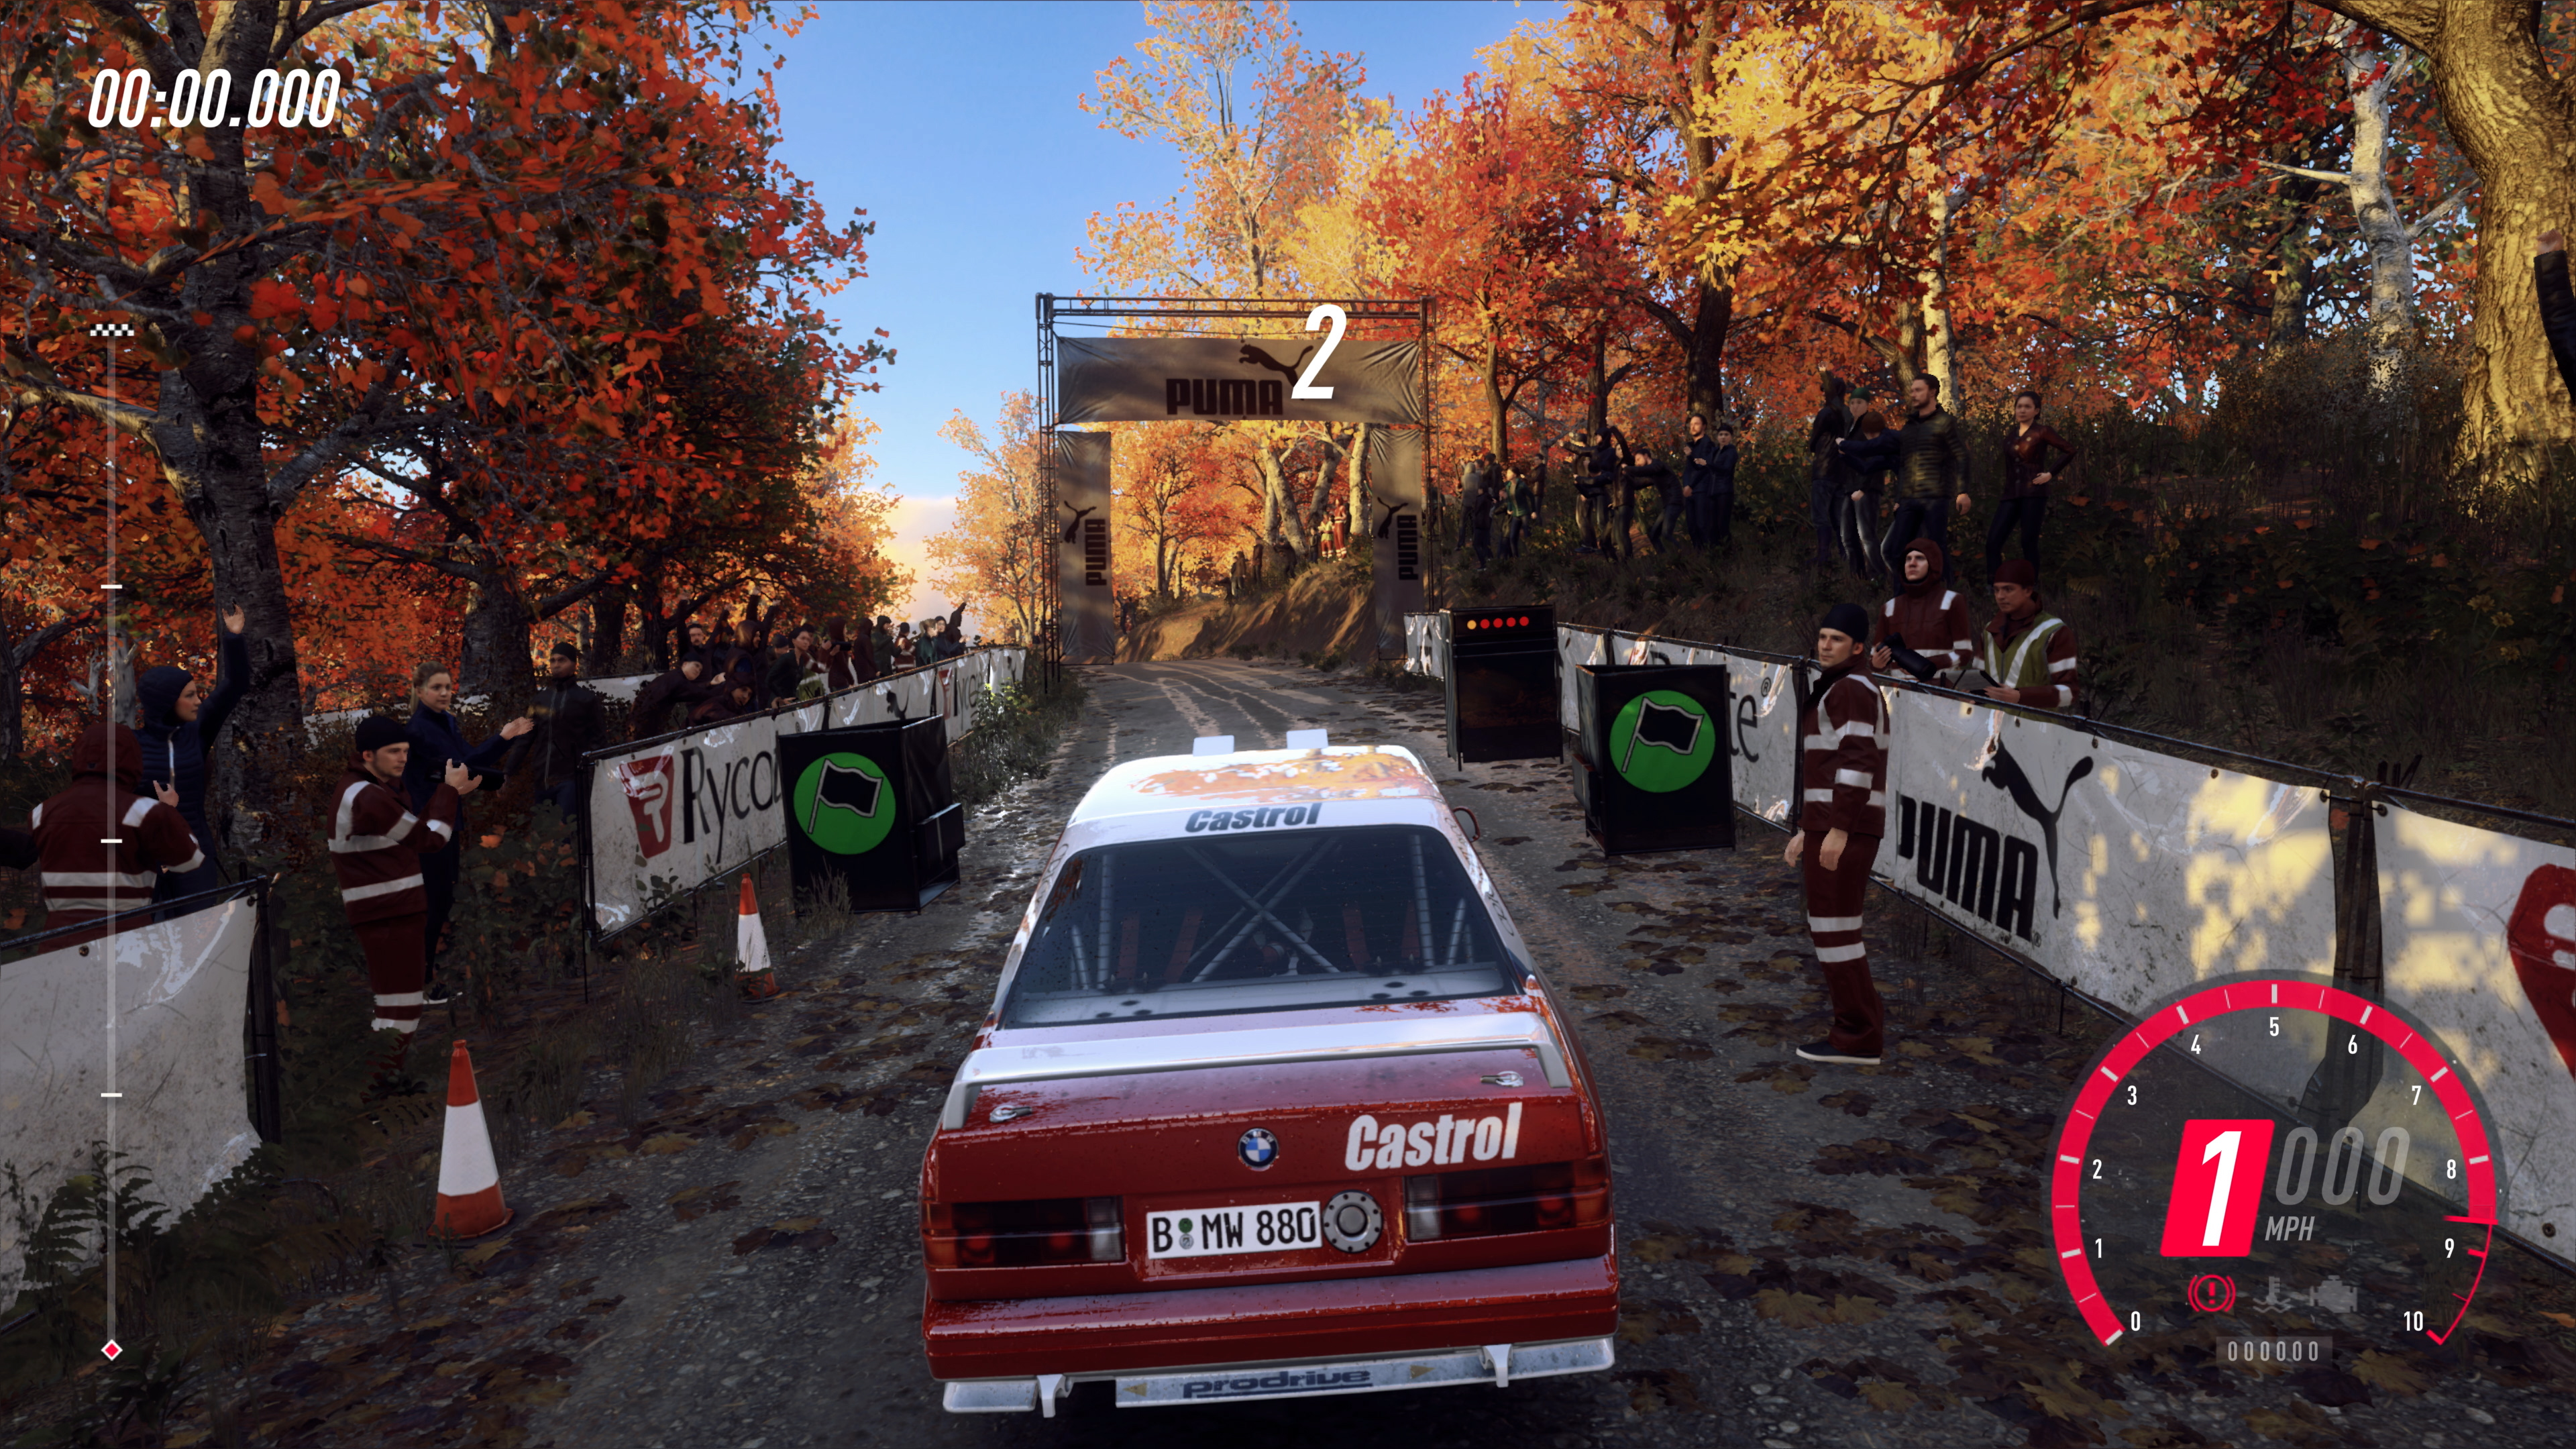 Dirt Rally 2 0 on Xbox One X races ahead of the pack